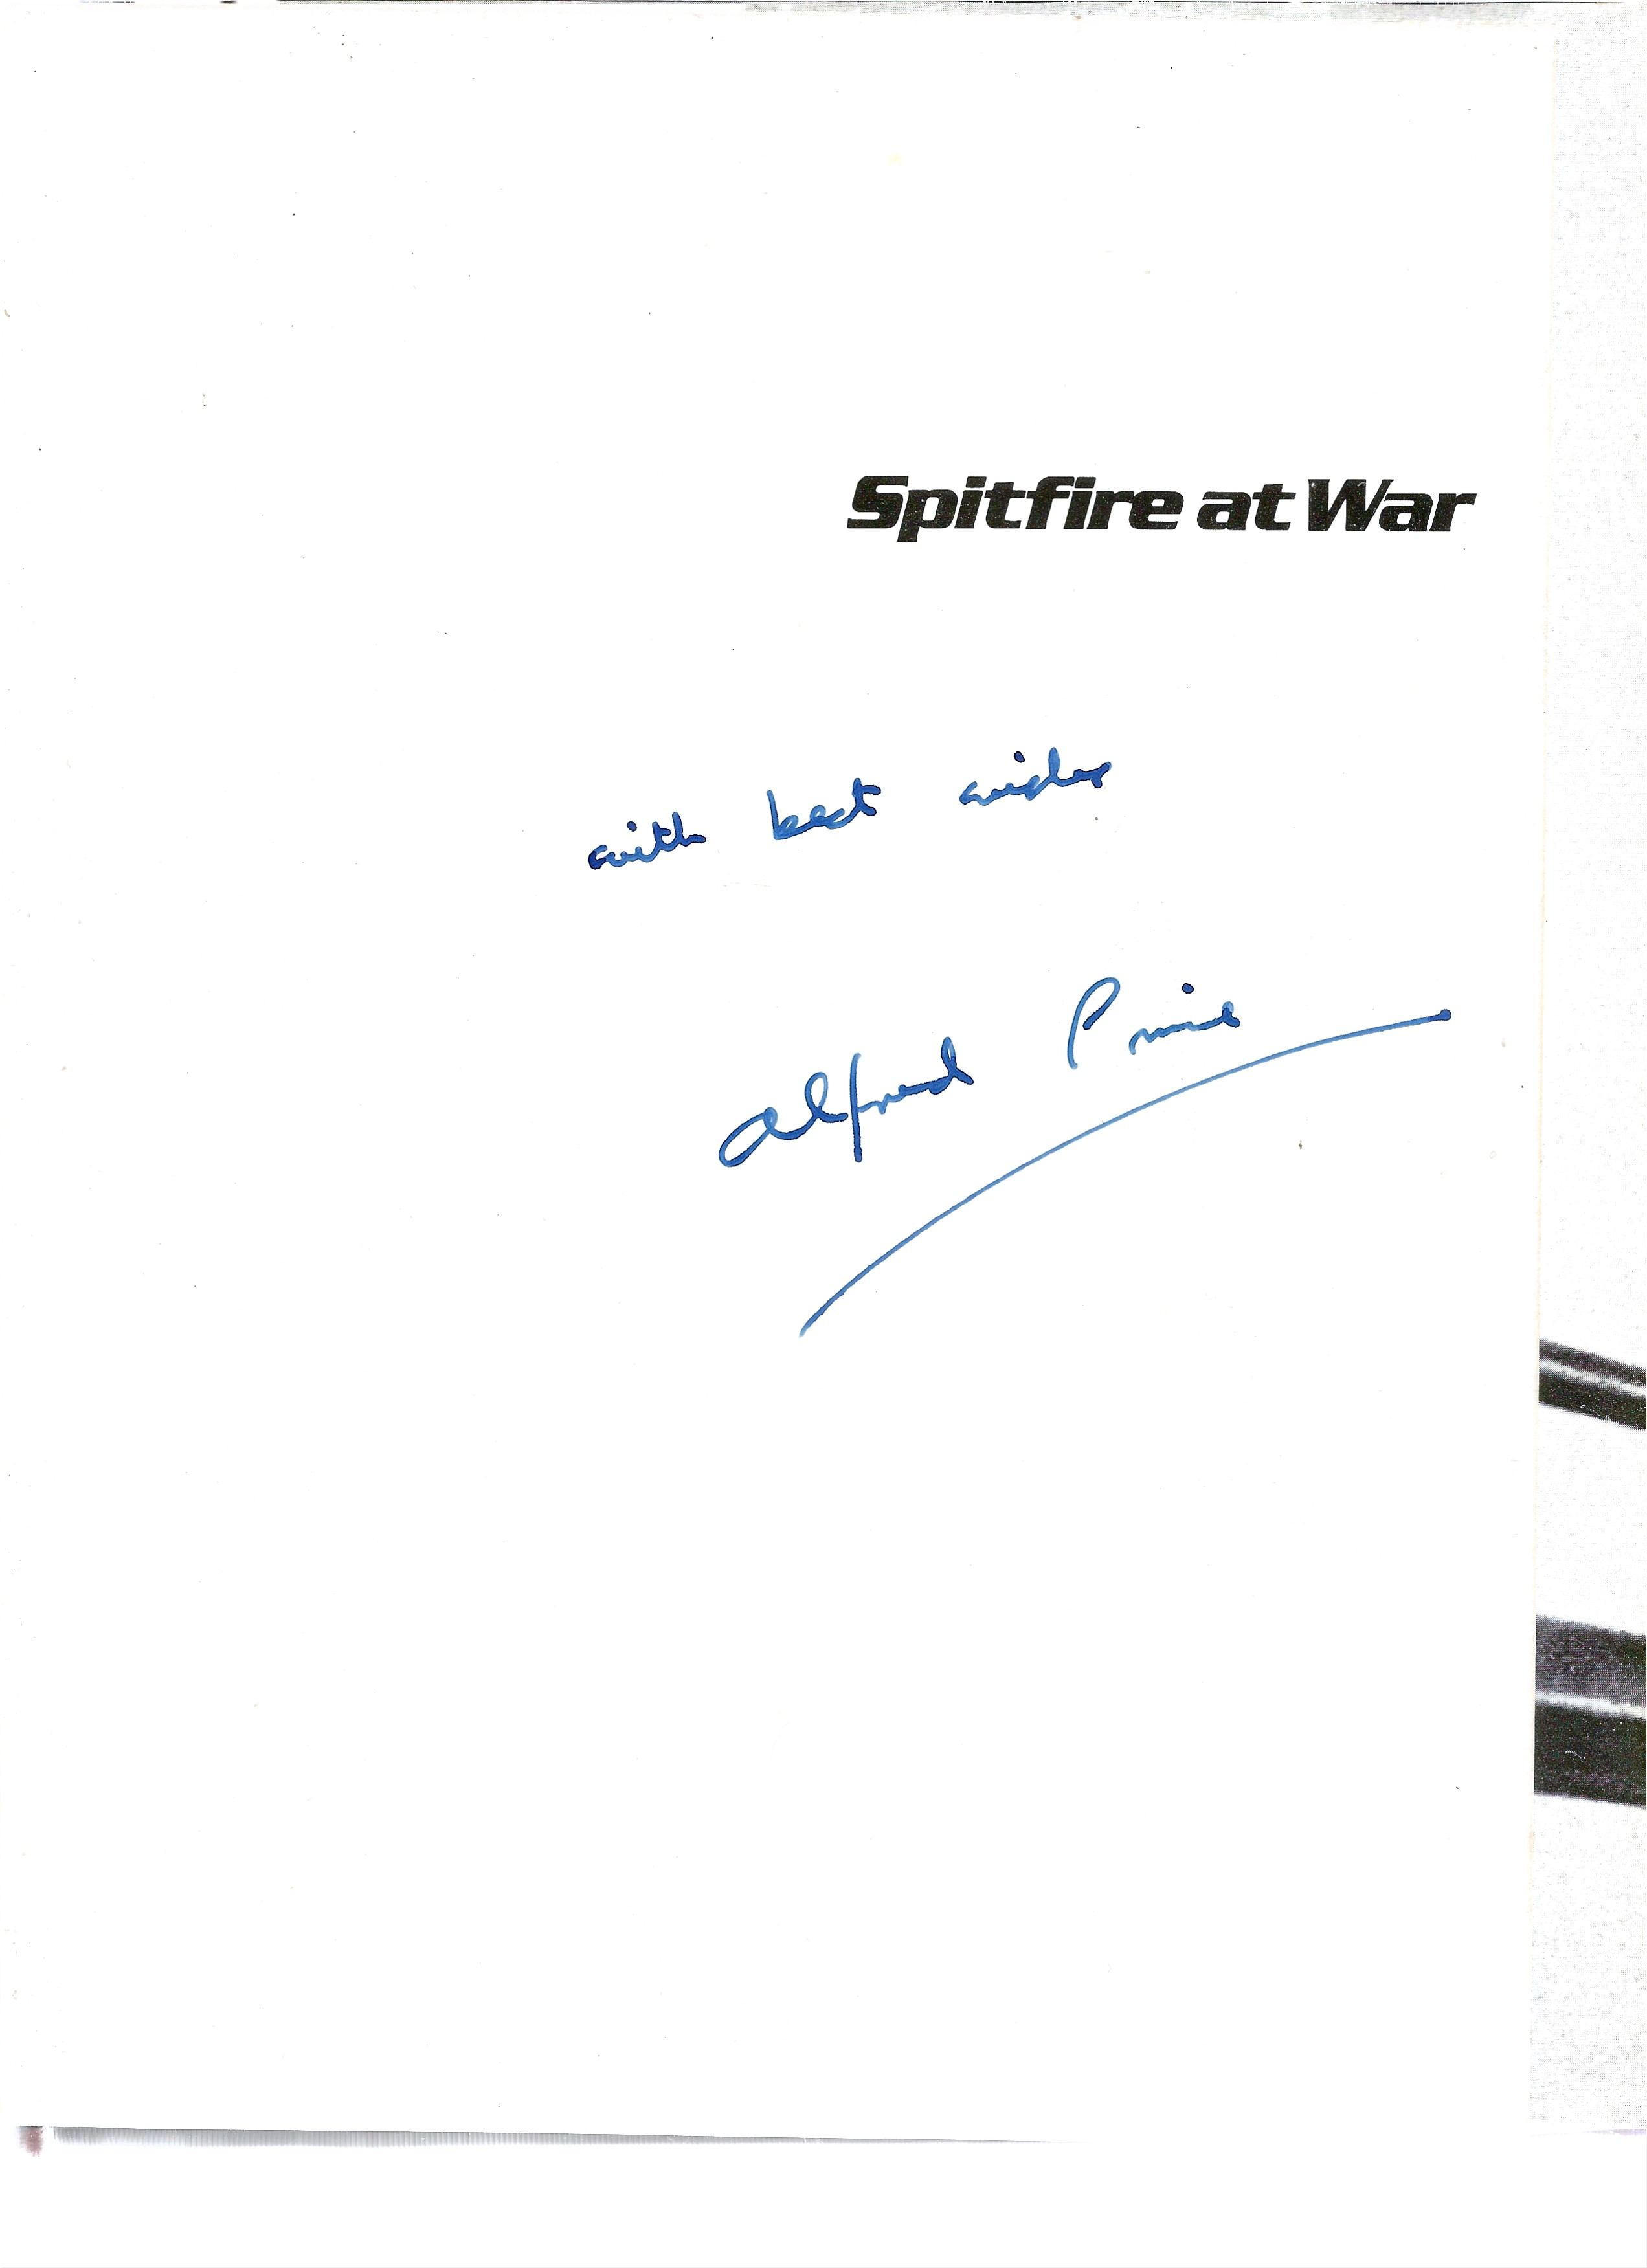 Alfred Price. Spitfire At War. A First Edition WW2 Hardback book in good condition, Signed by former - Image 2 of 3